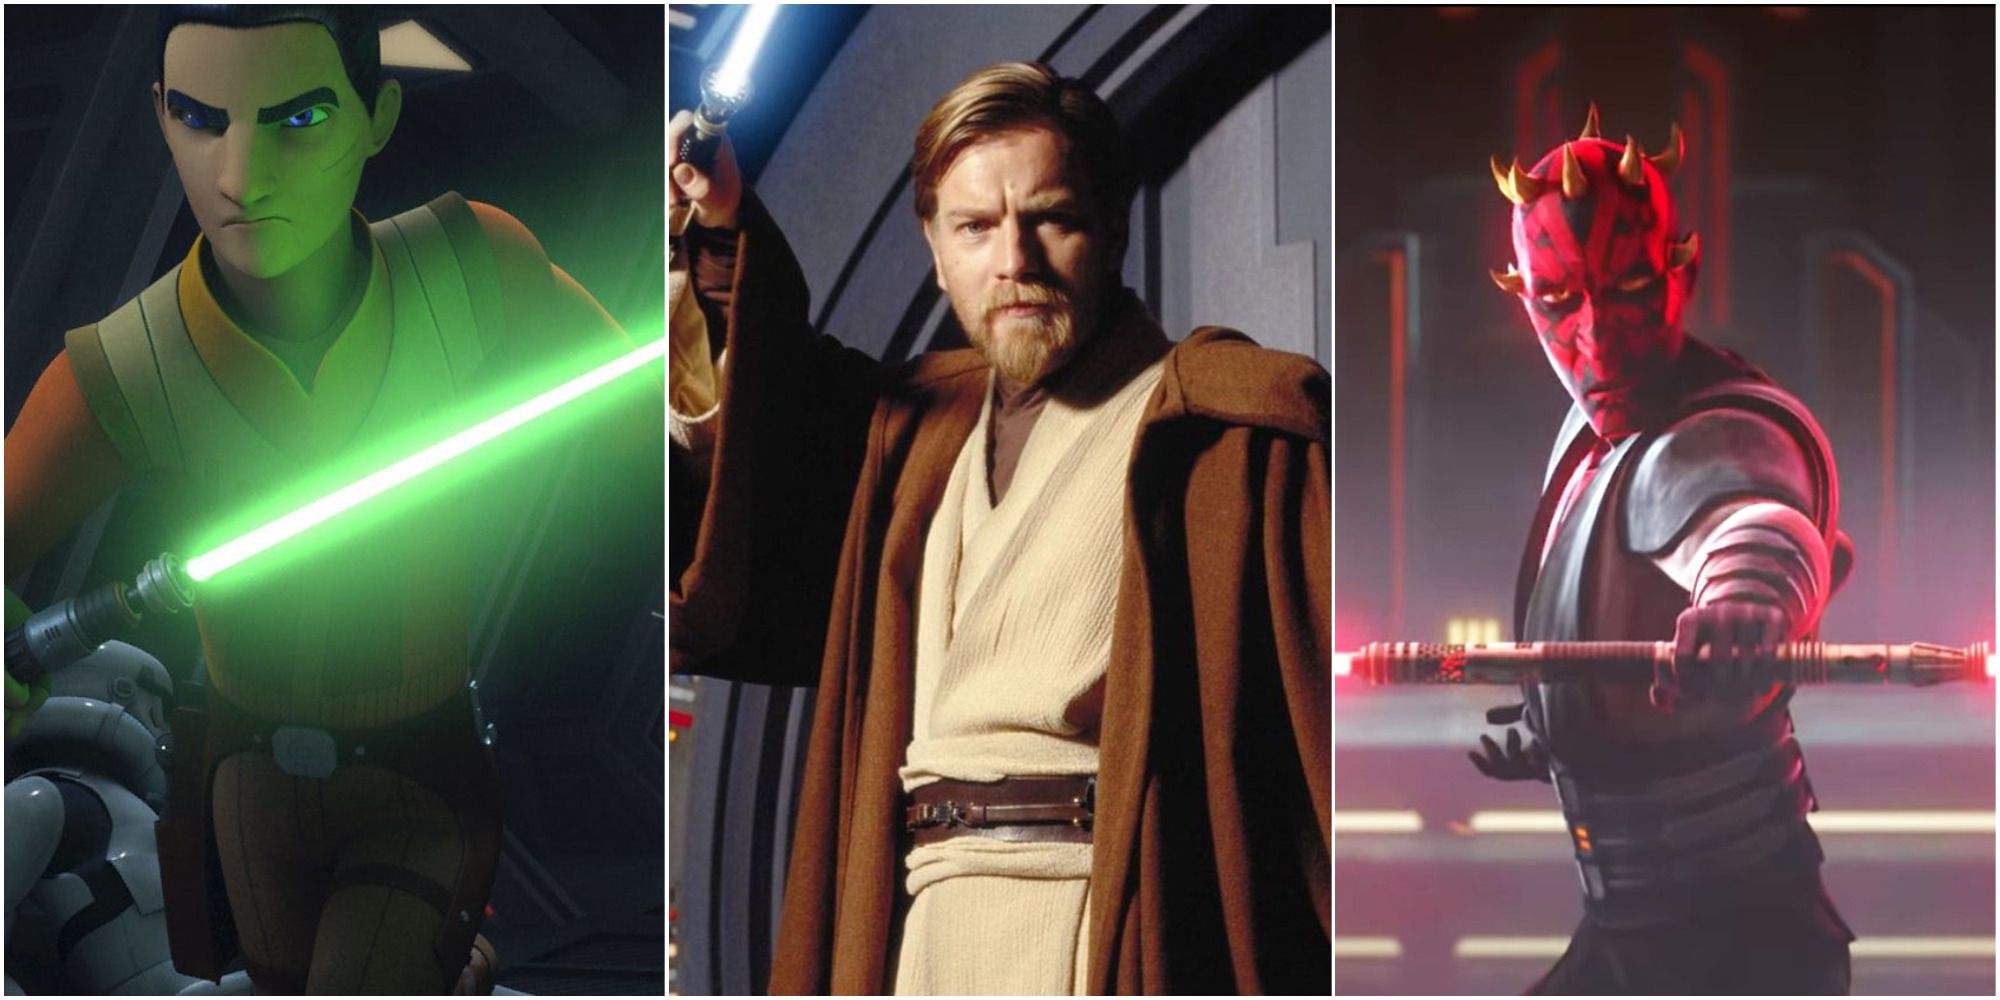 Star Wars: 10 Characters Who Built Their Own Lightsaber